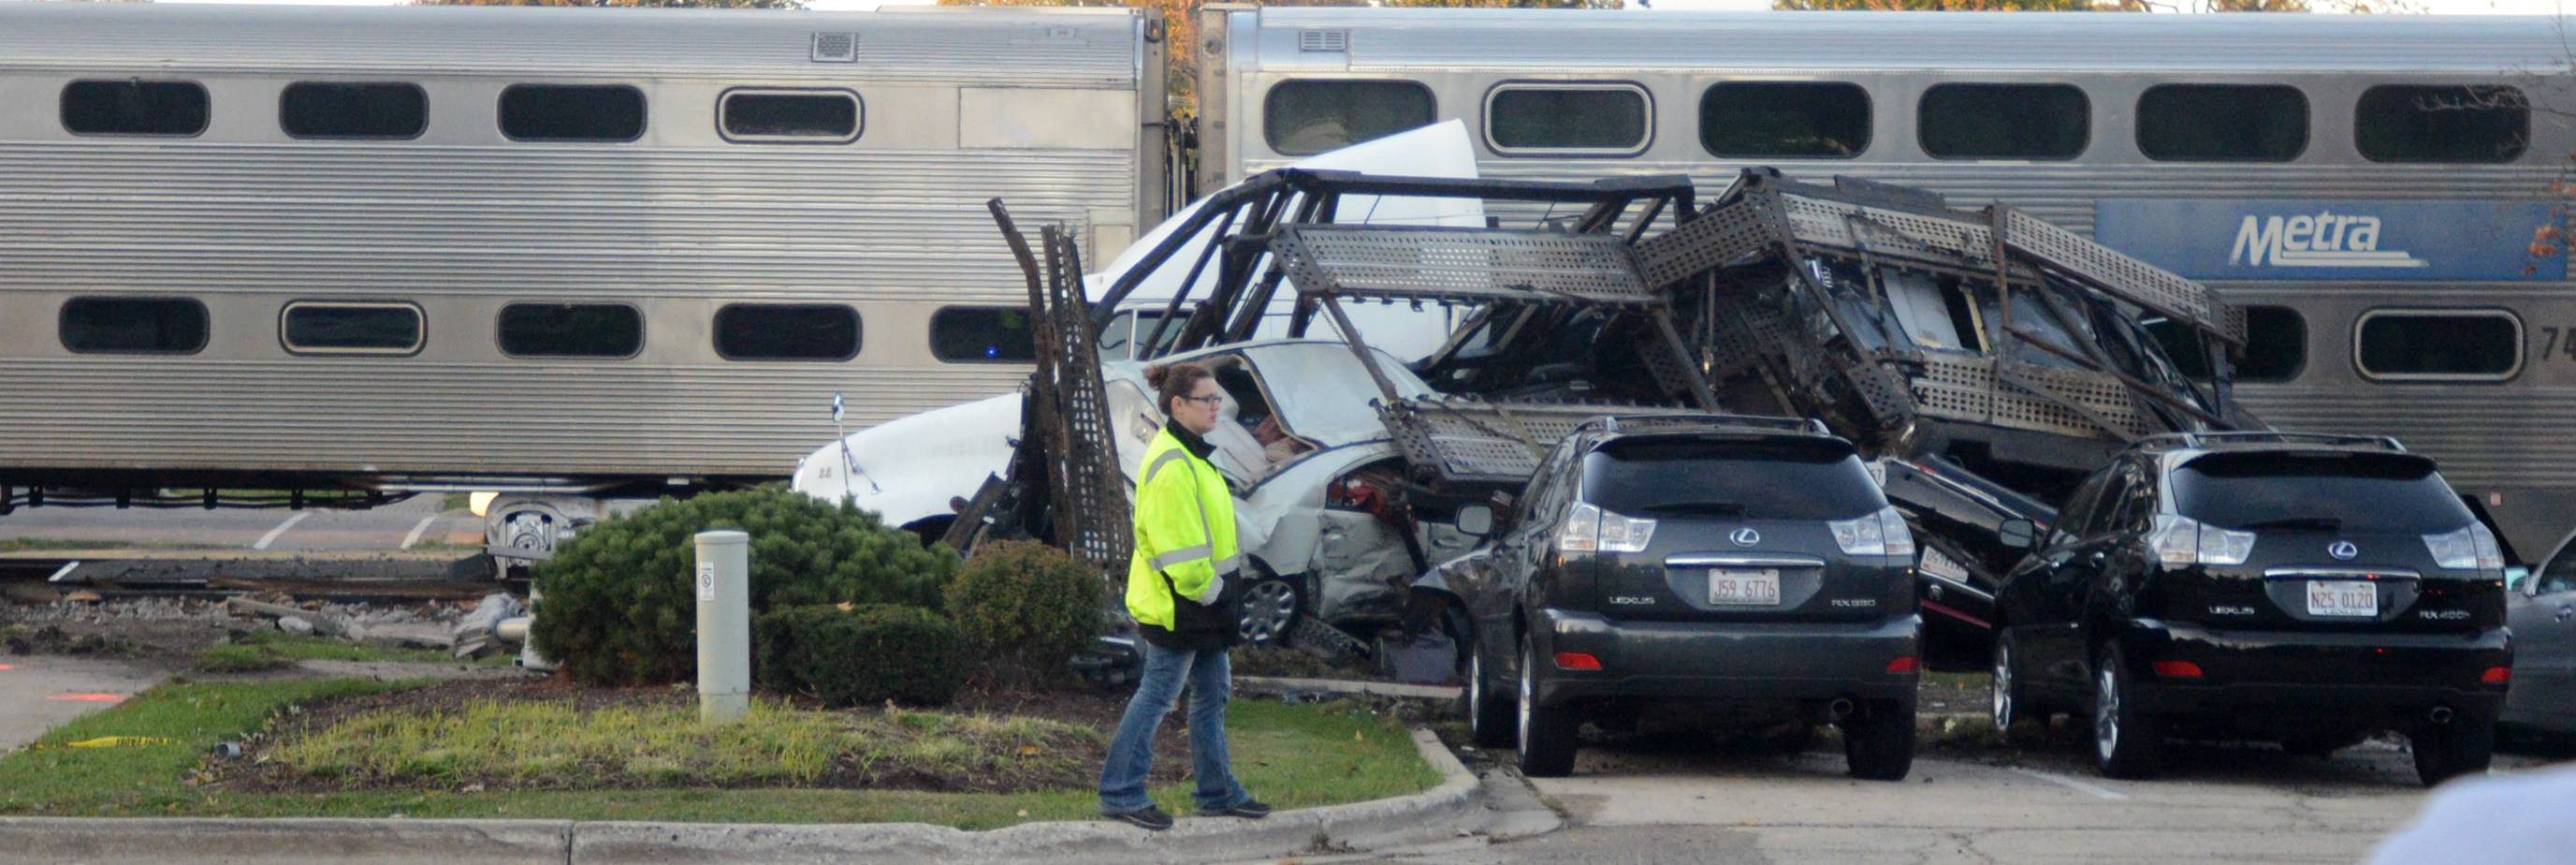 Collisions between trains and cars or pedestrians -- a fact of life in the suburbs -- also plague the international community. Prevention was the subject of a global symposium last week in Illinois.